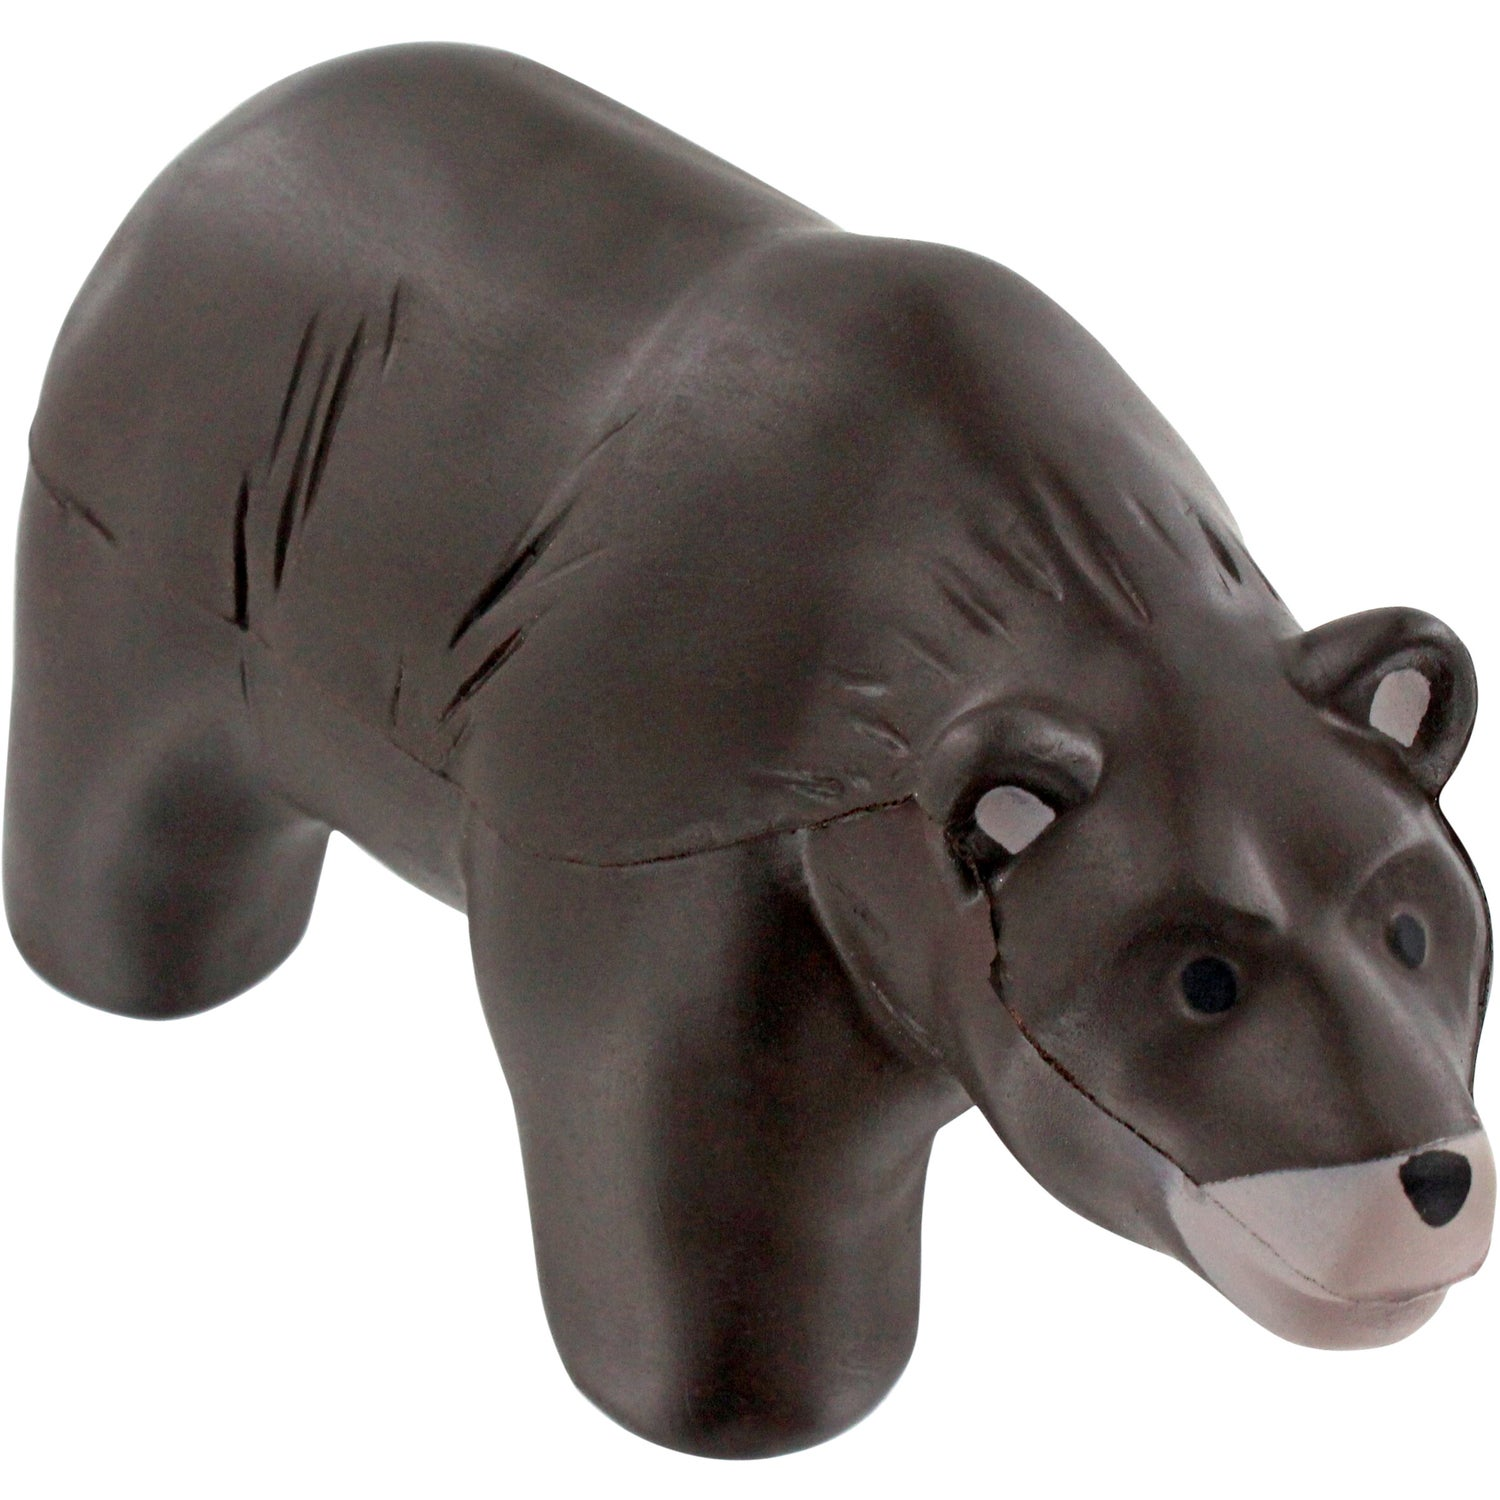 Grizzly Bear Stress Ball